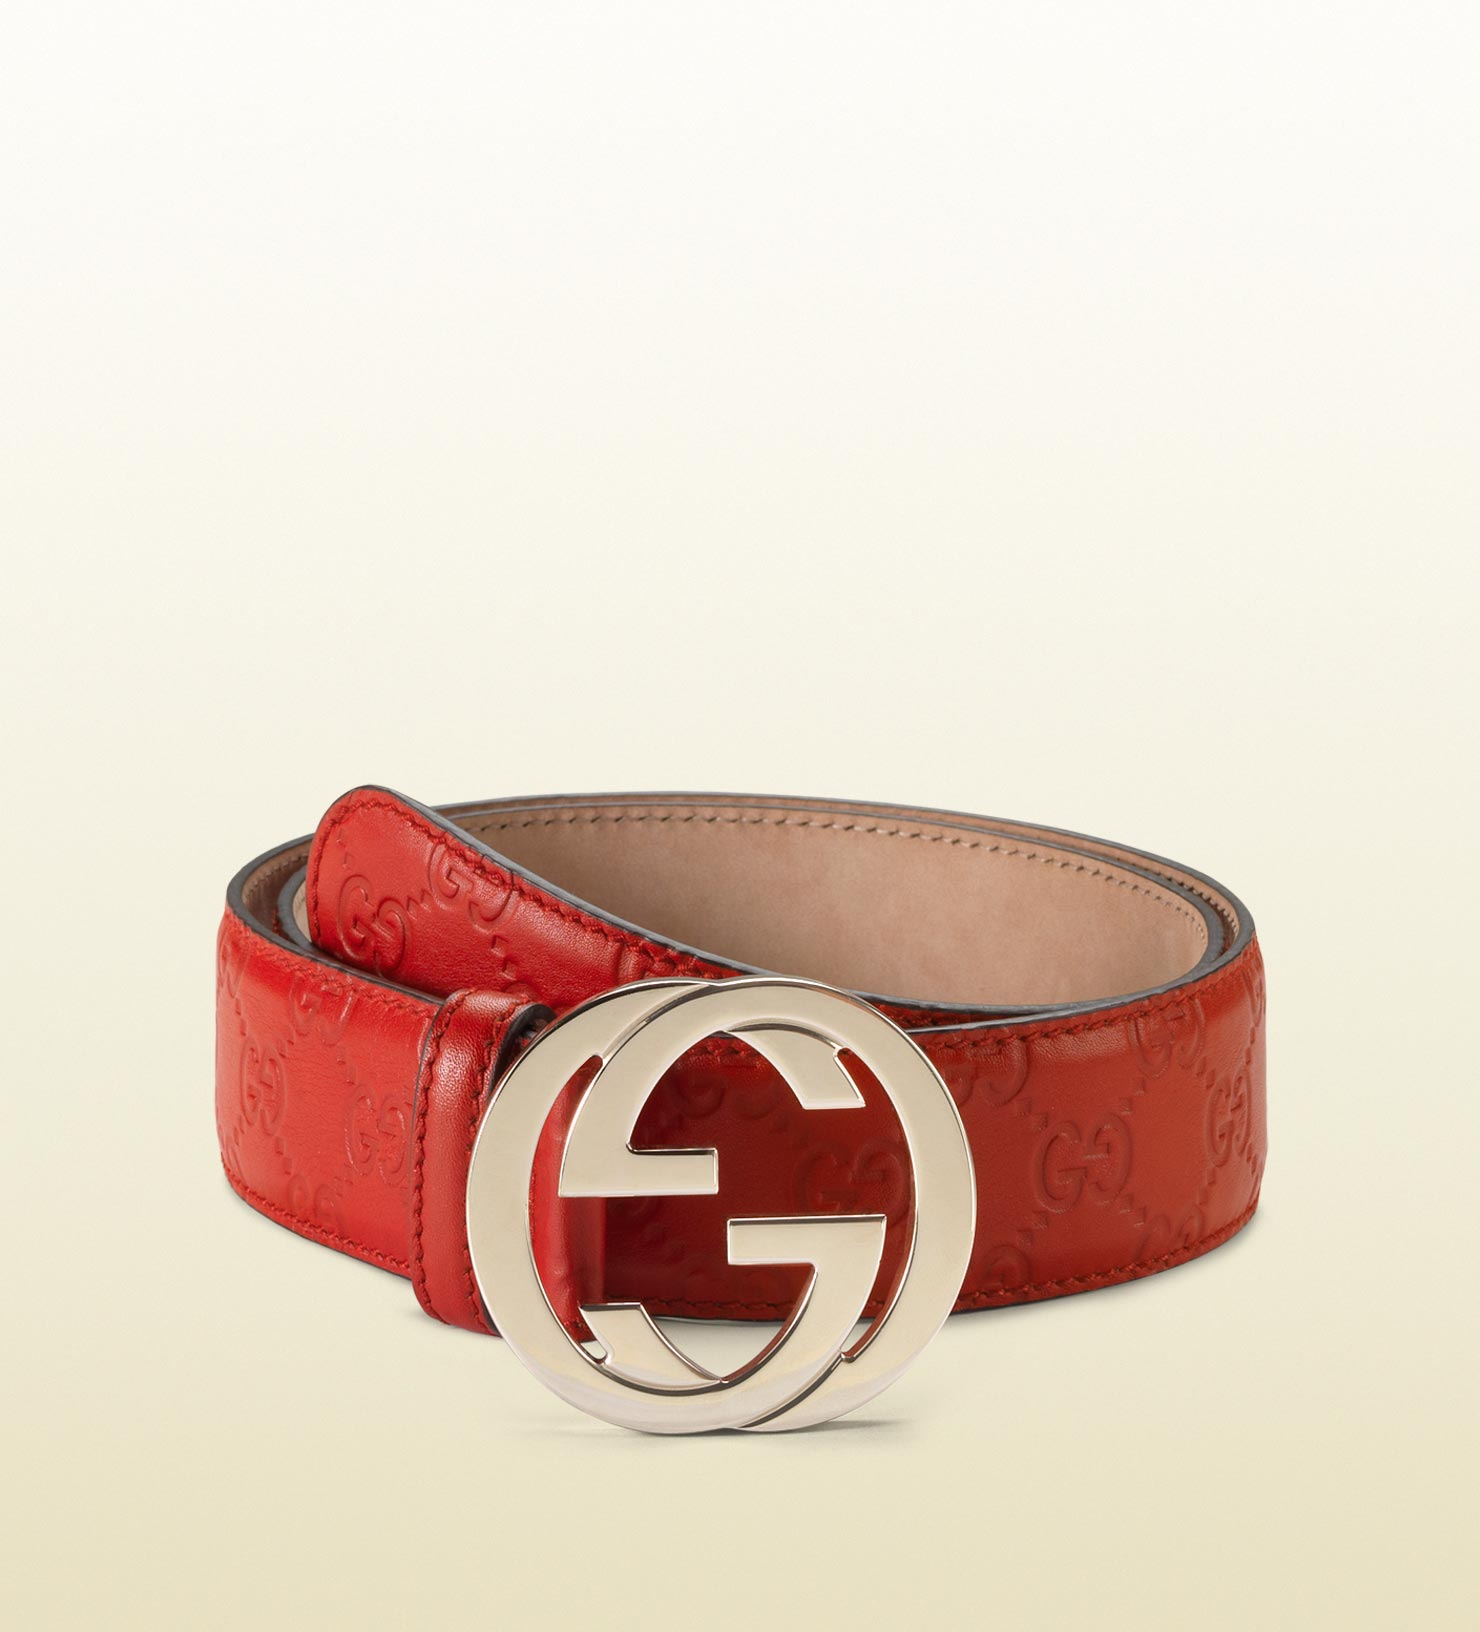 Gucci Ssima Leather Belt With Interlocking G Buckle in Red ...